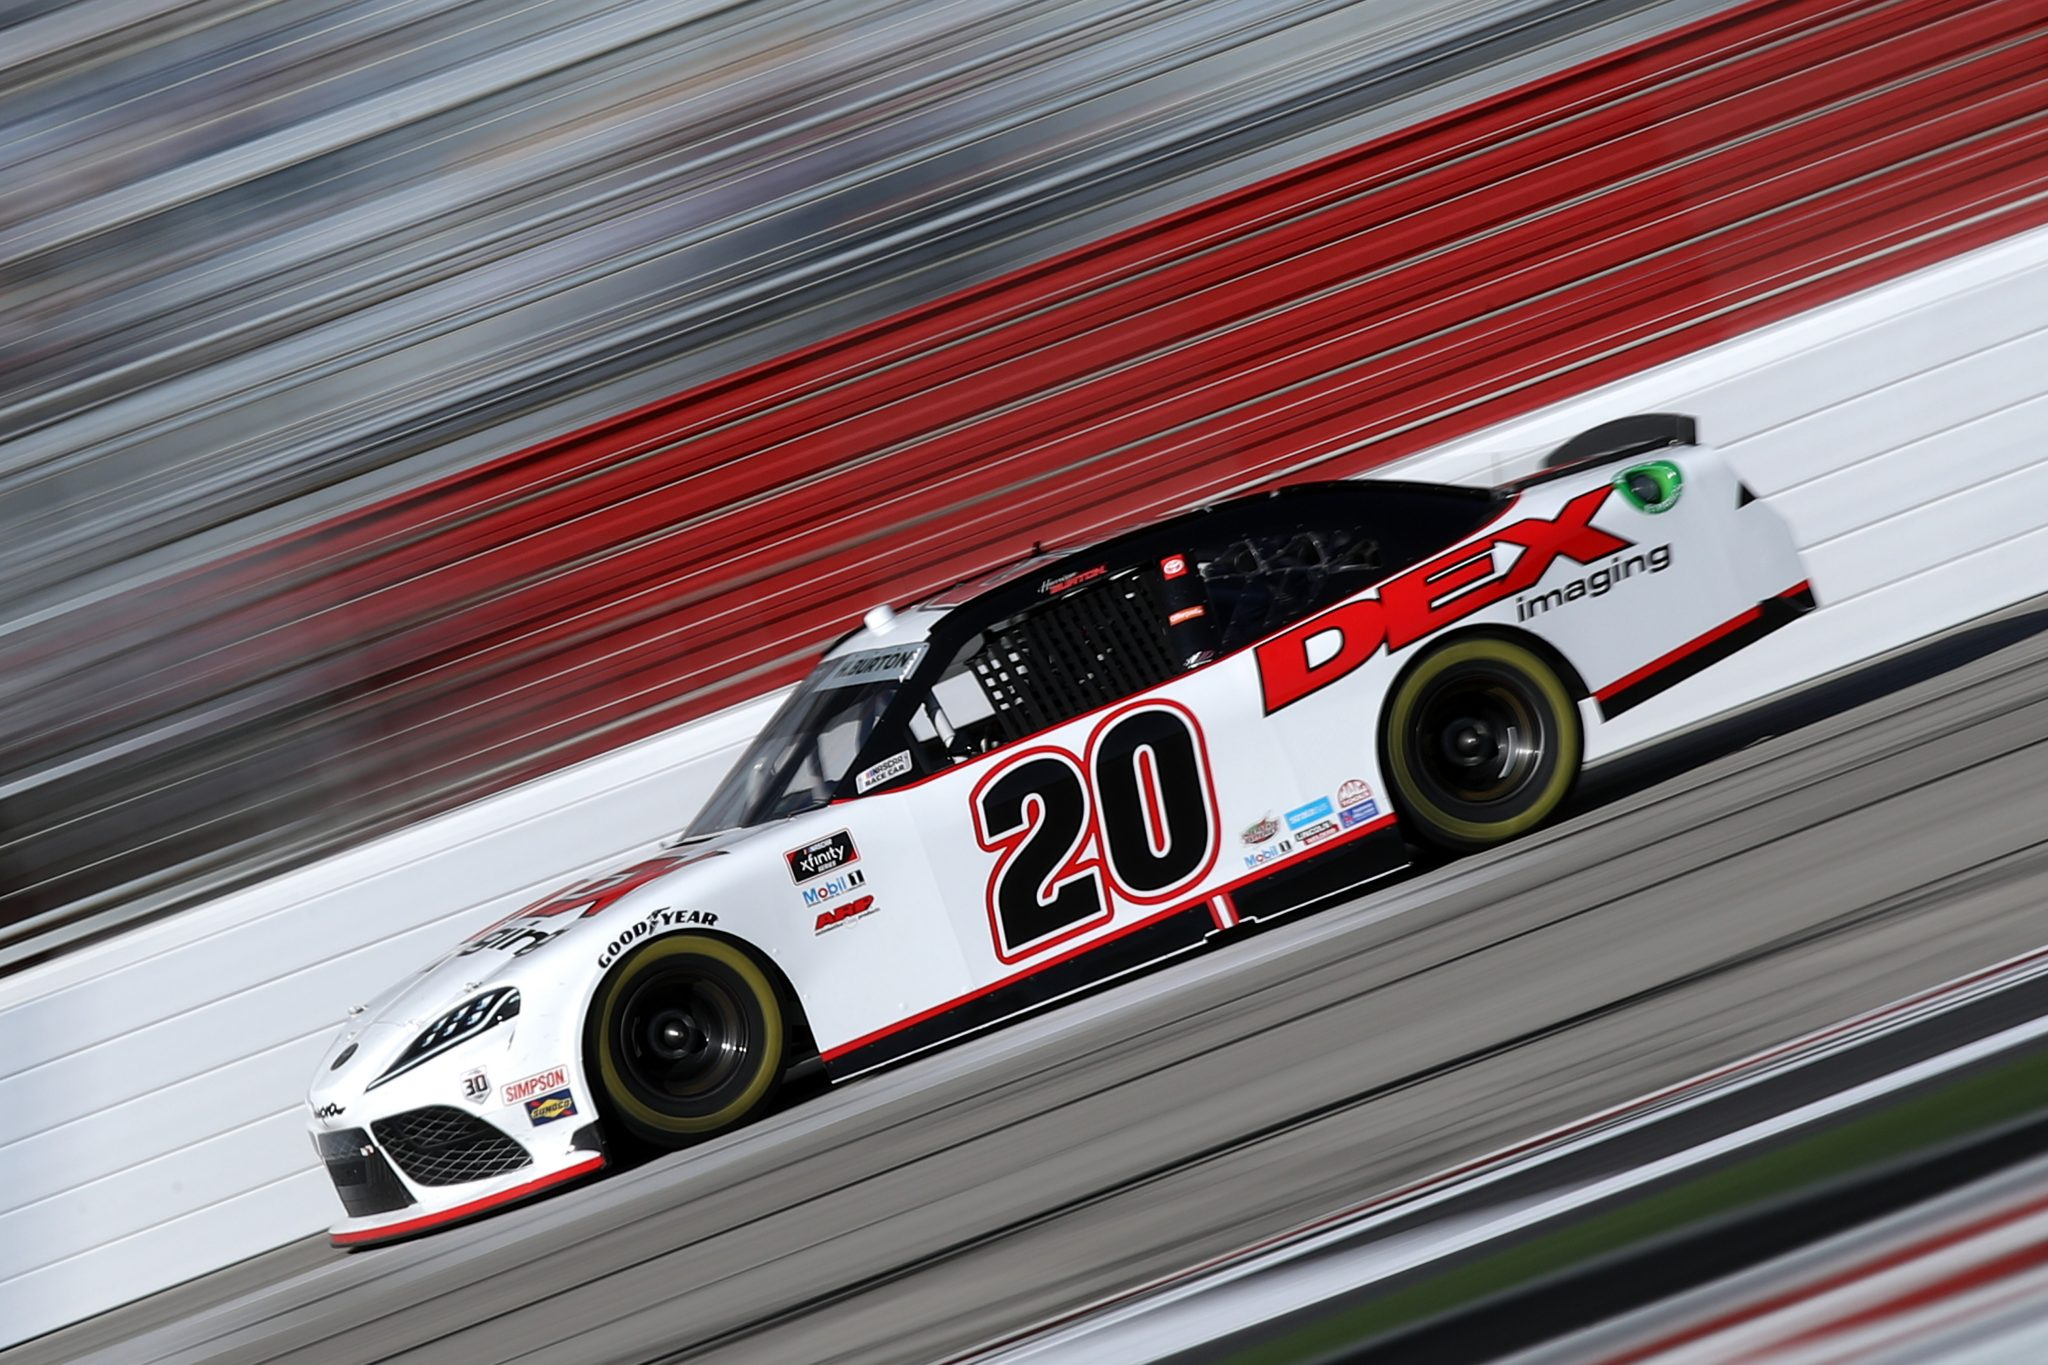 HAMPTON, GEORGIA - MARCH 20: Harrison Burton, driver of the #20 DEX Imaging Toyota, drives during the NASCAR Xfinity Series EchoPark 250 at Atlanta Motor Speedway on March 20, 2021 in Hampton, Georgia. (Photo by Sean Gardner/Getty Images) | Getty Images